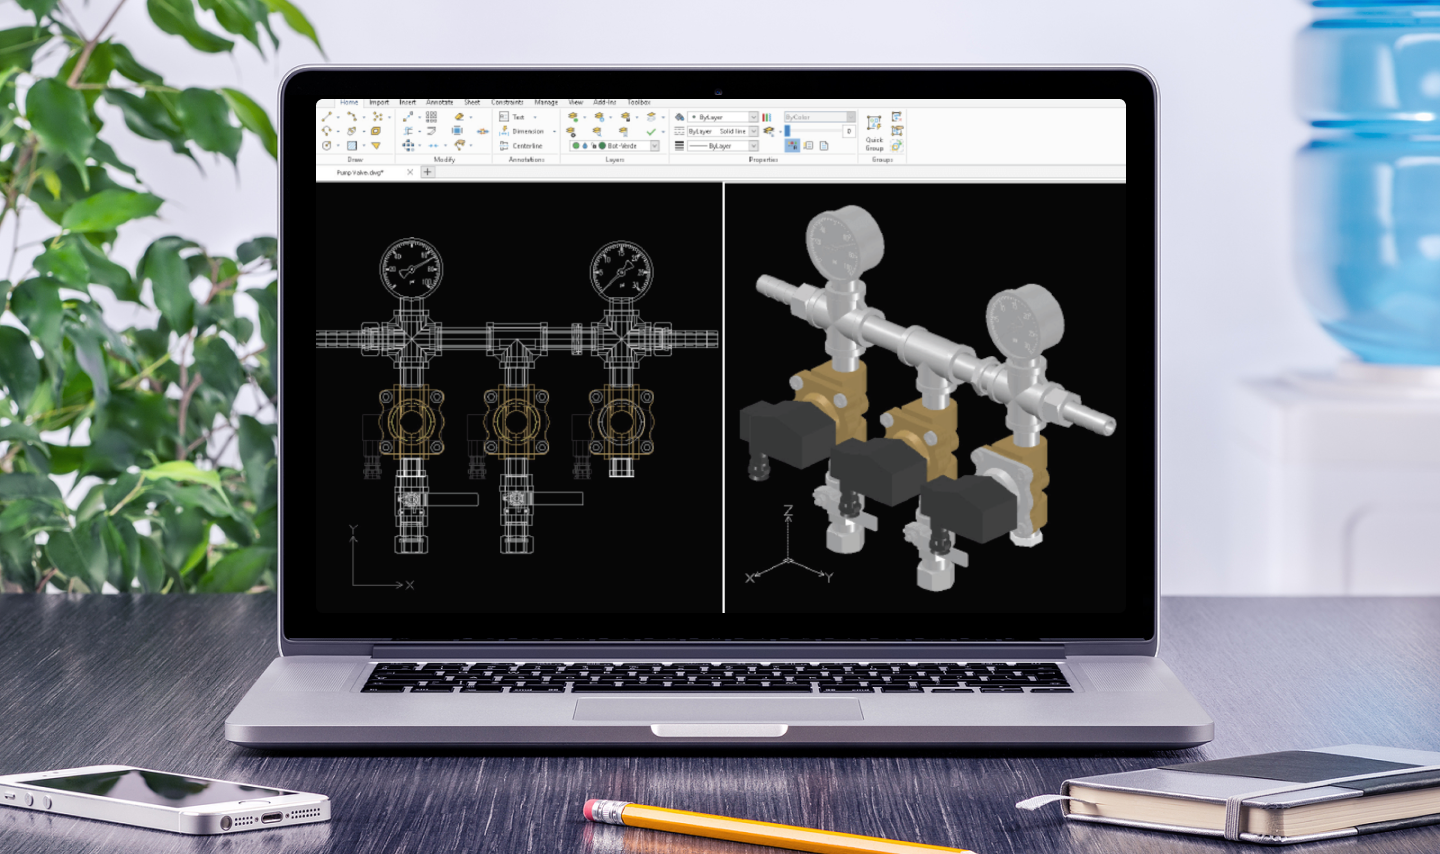 DraftSight affordable CAD tool with 2D drafting and 3D design.